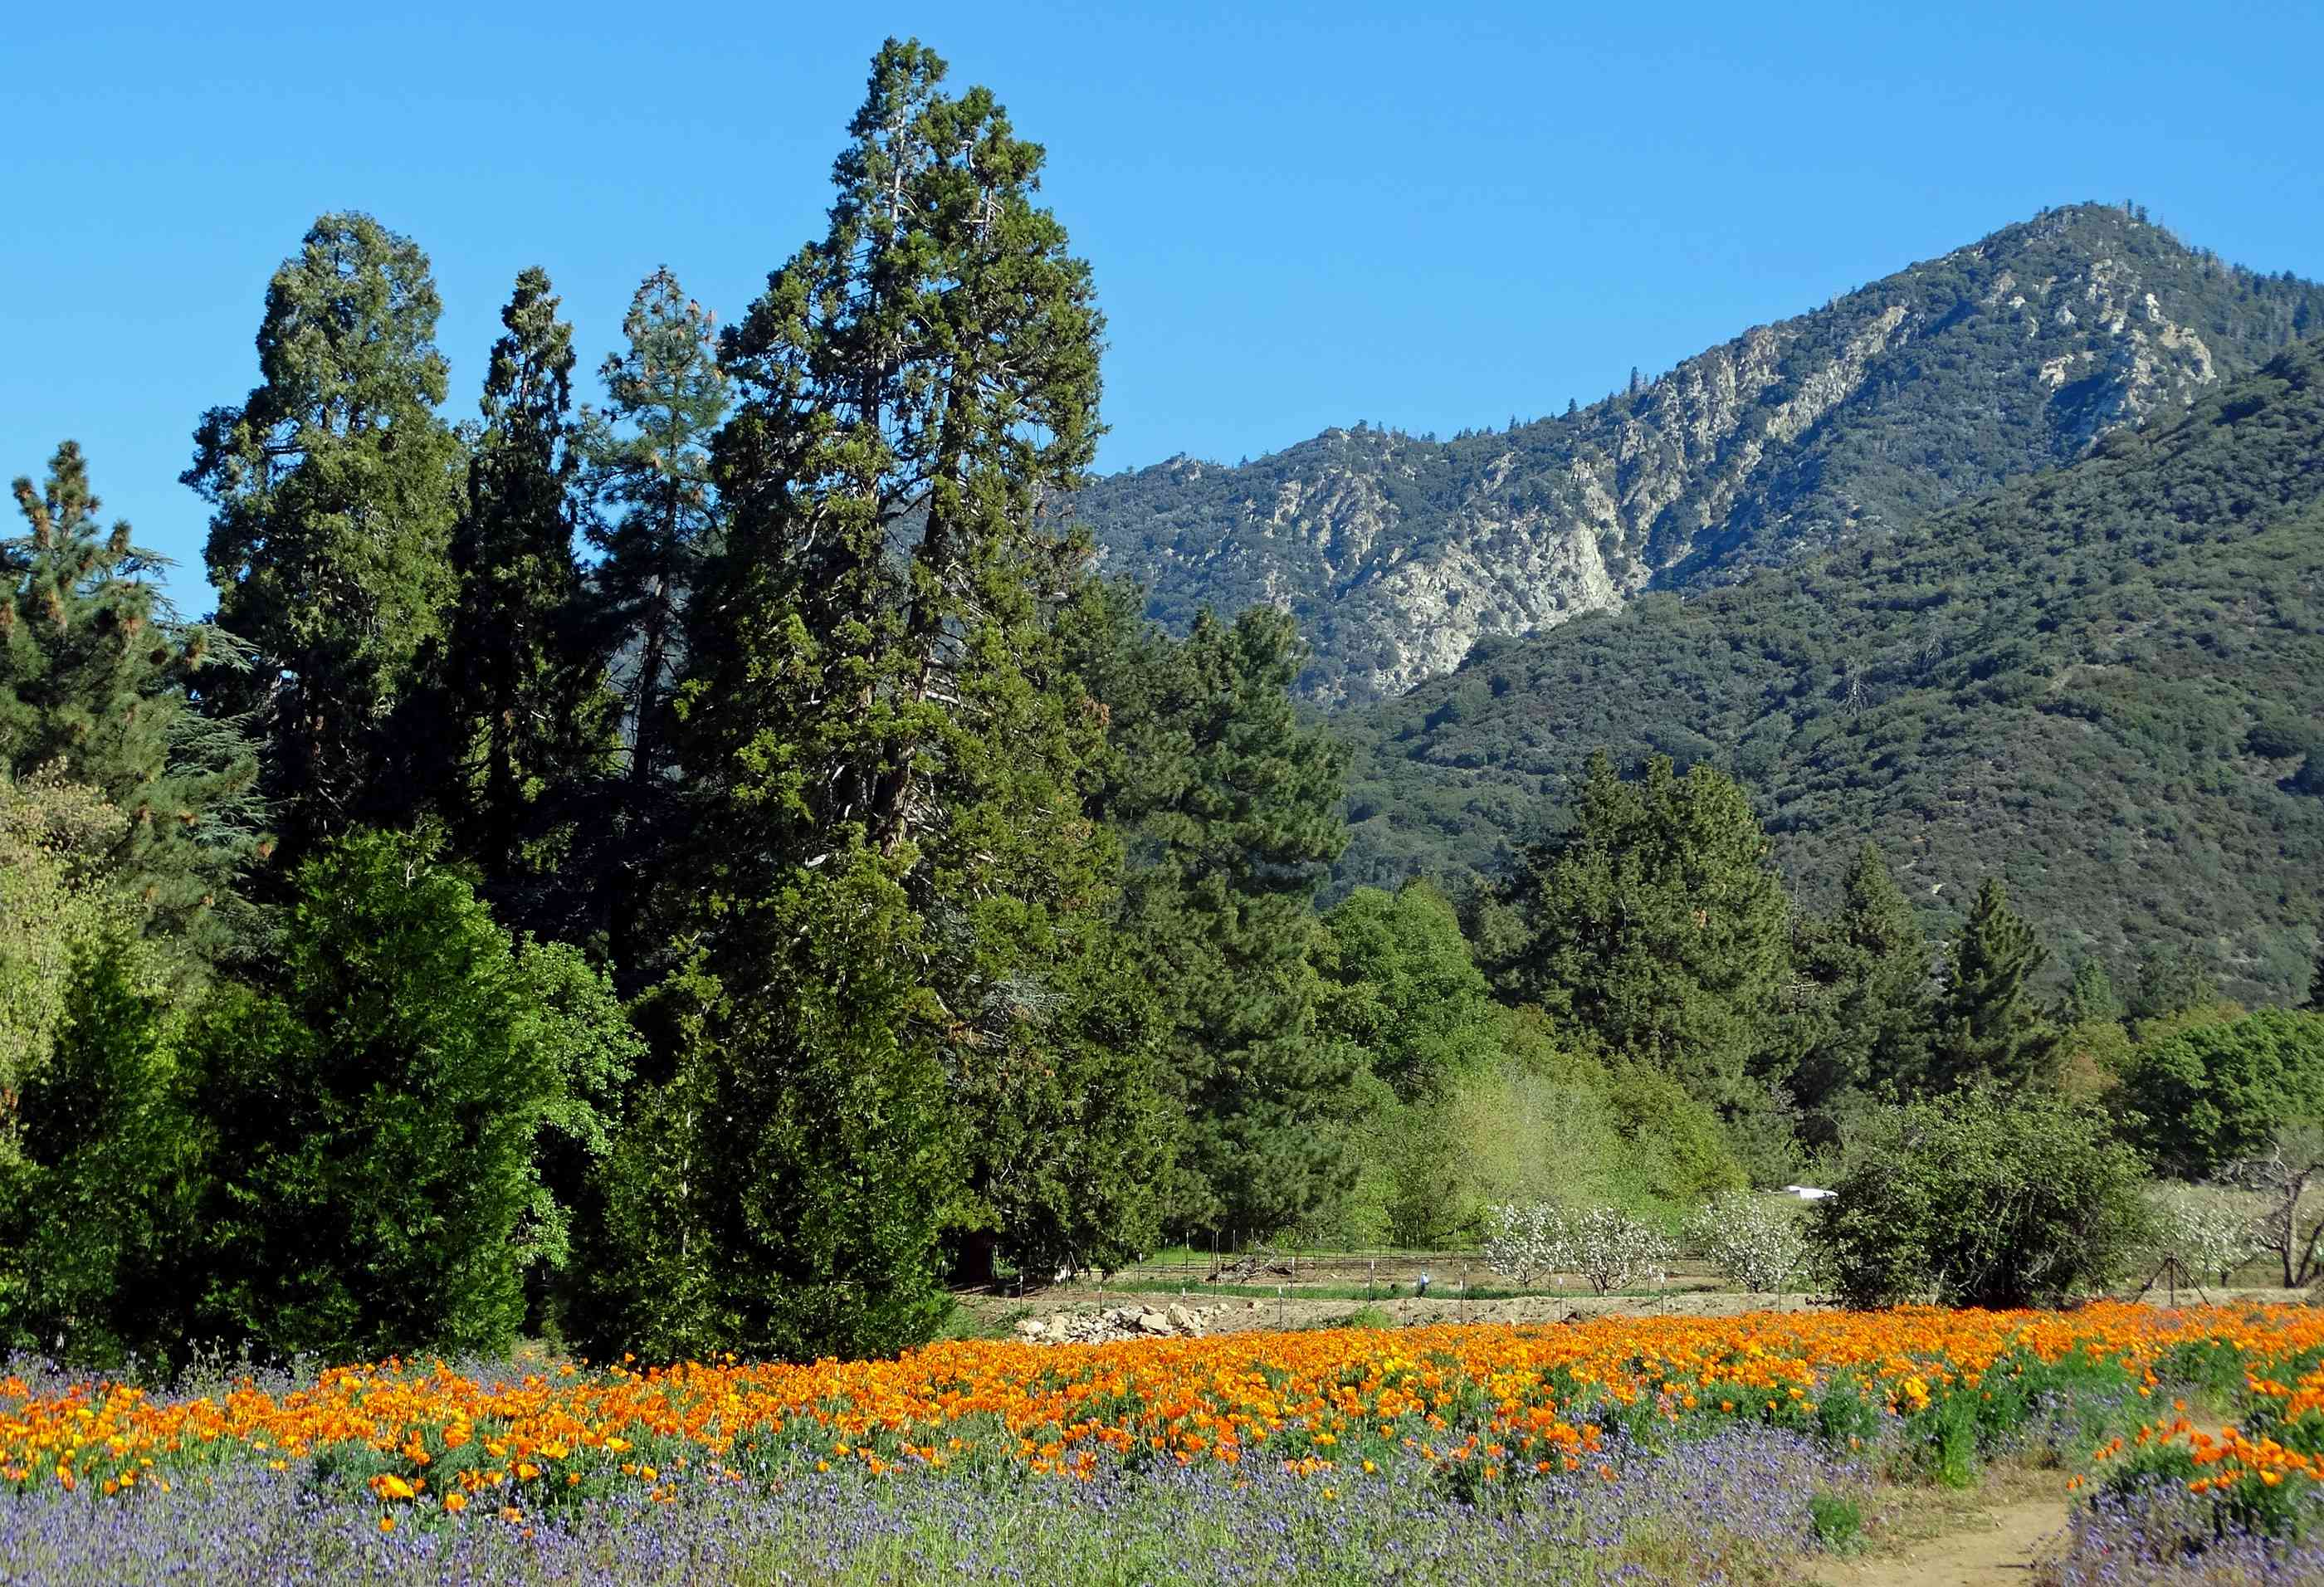 california wildflowers with trees and mountains in the background